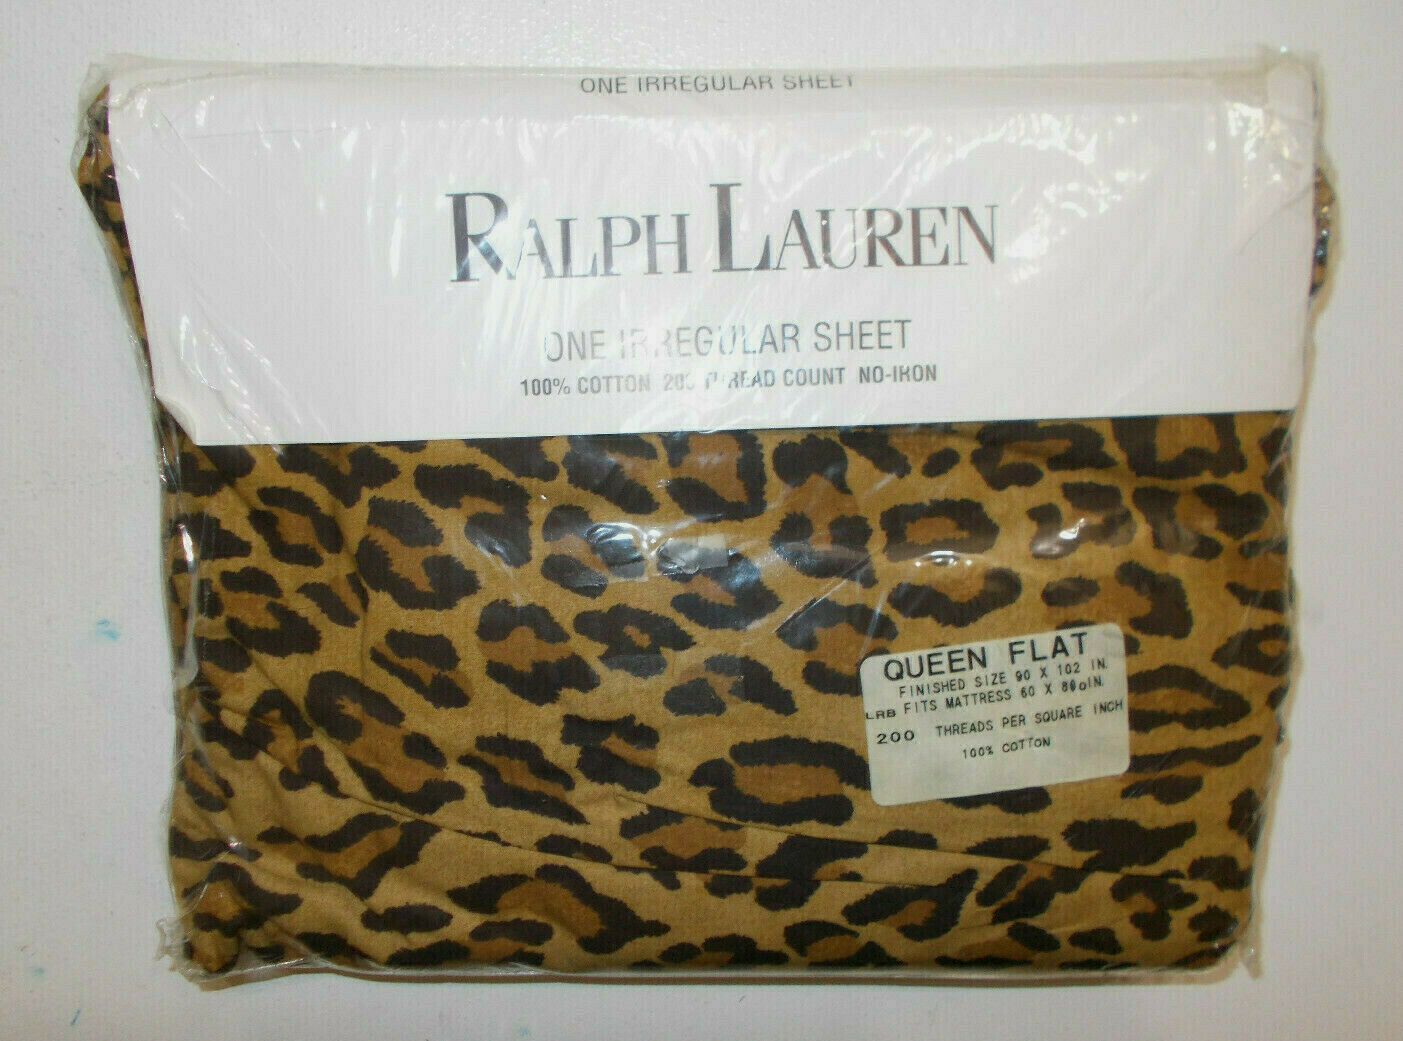 RALPH LAUREN Aragon Neutral Leopard Queen Flat Sheet Guinevere Galahad IRREGULAR